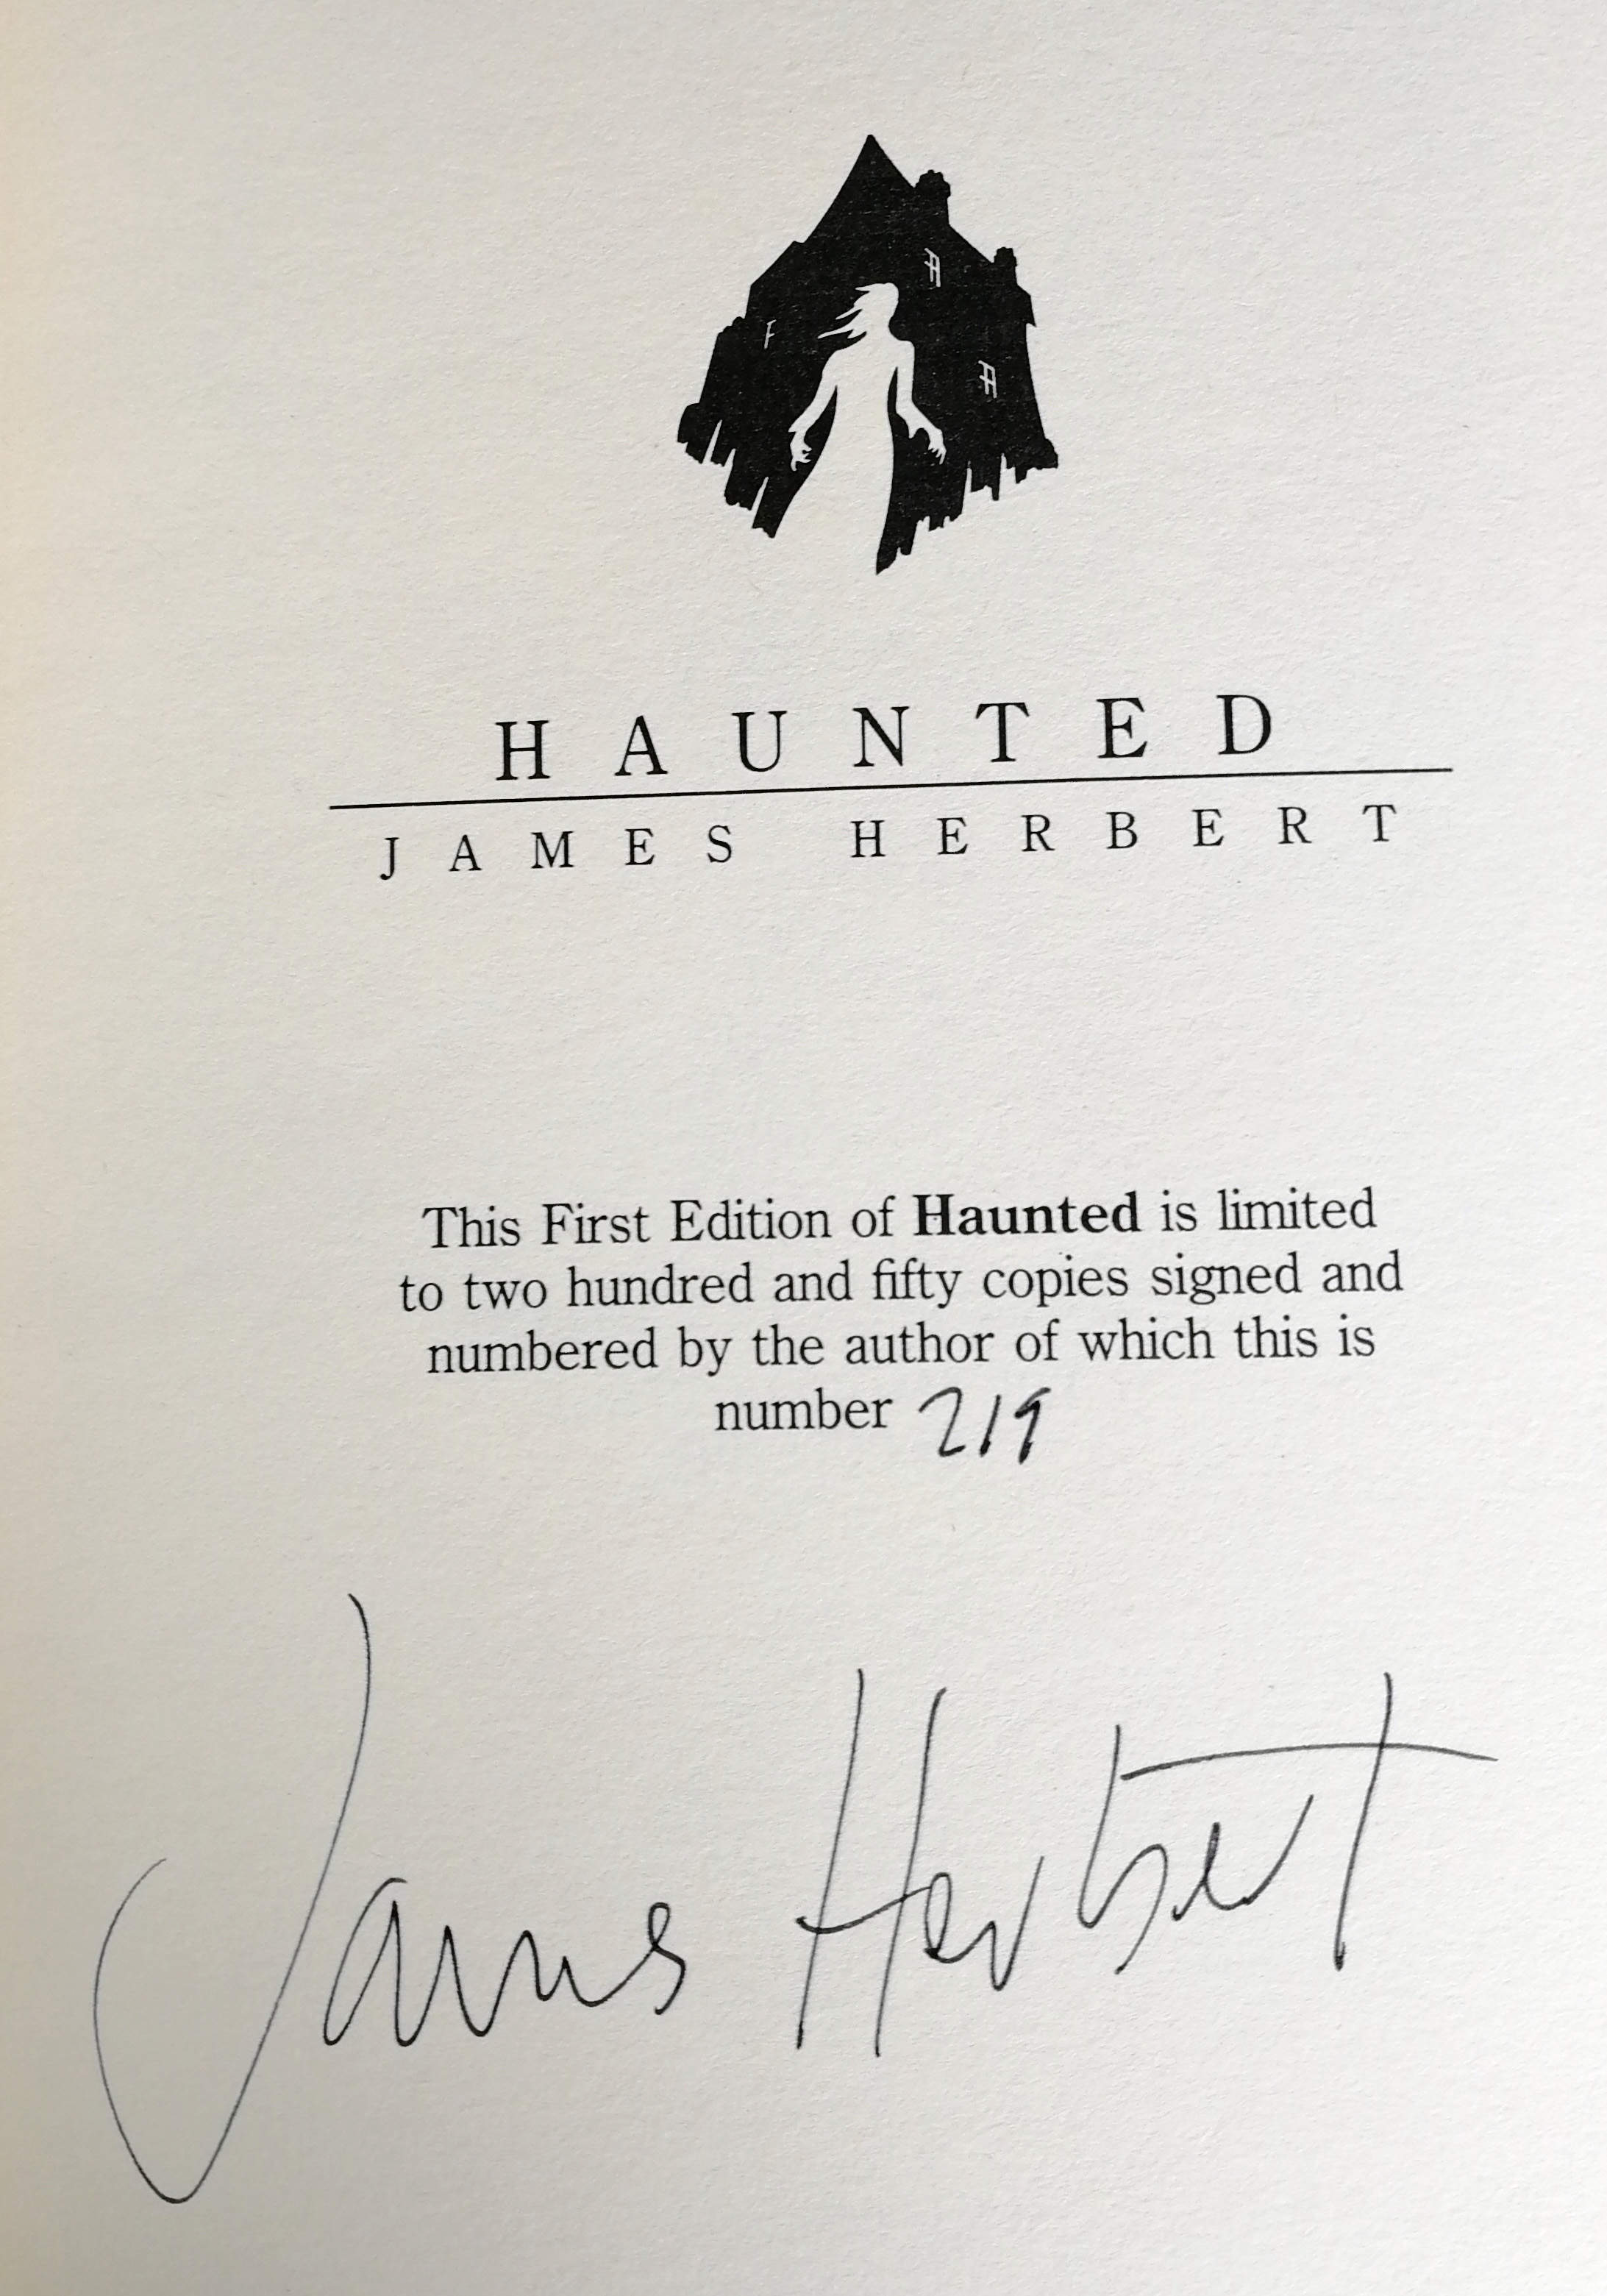 Haunted Signed Limited Edition